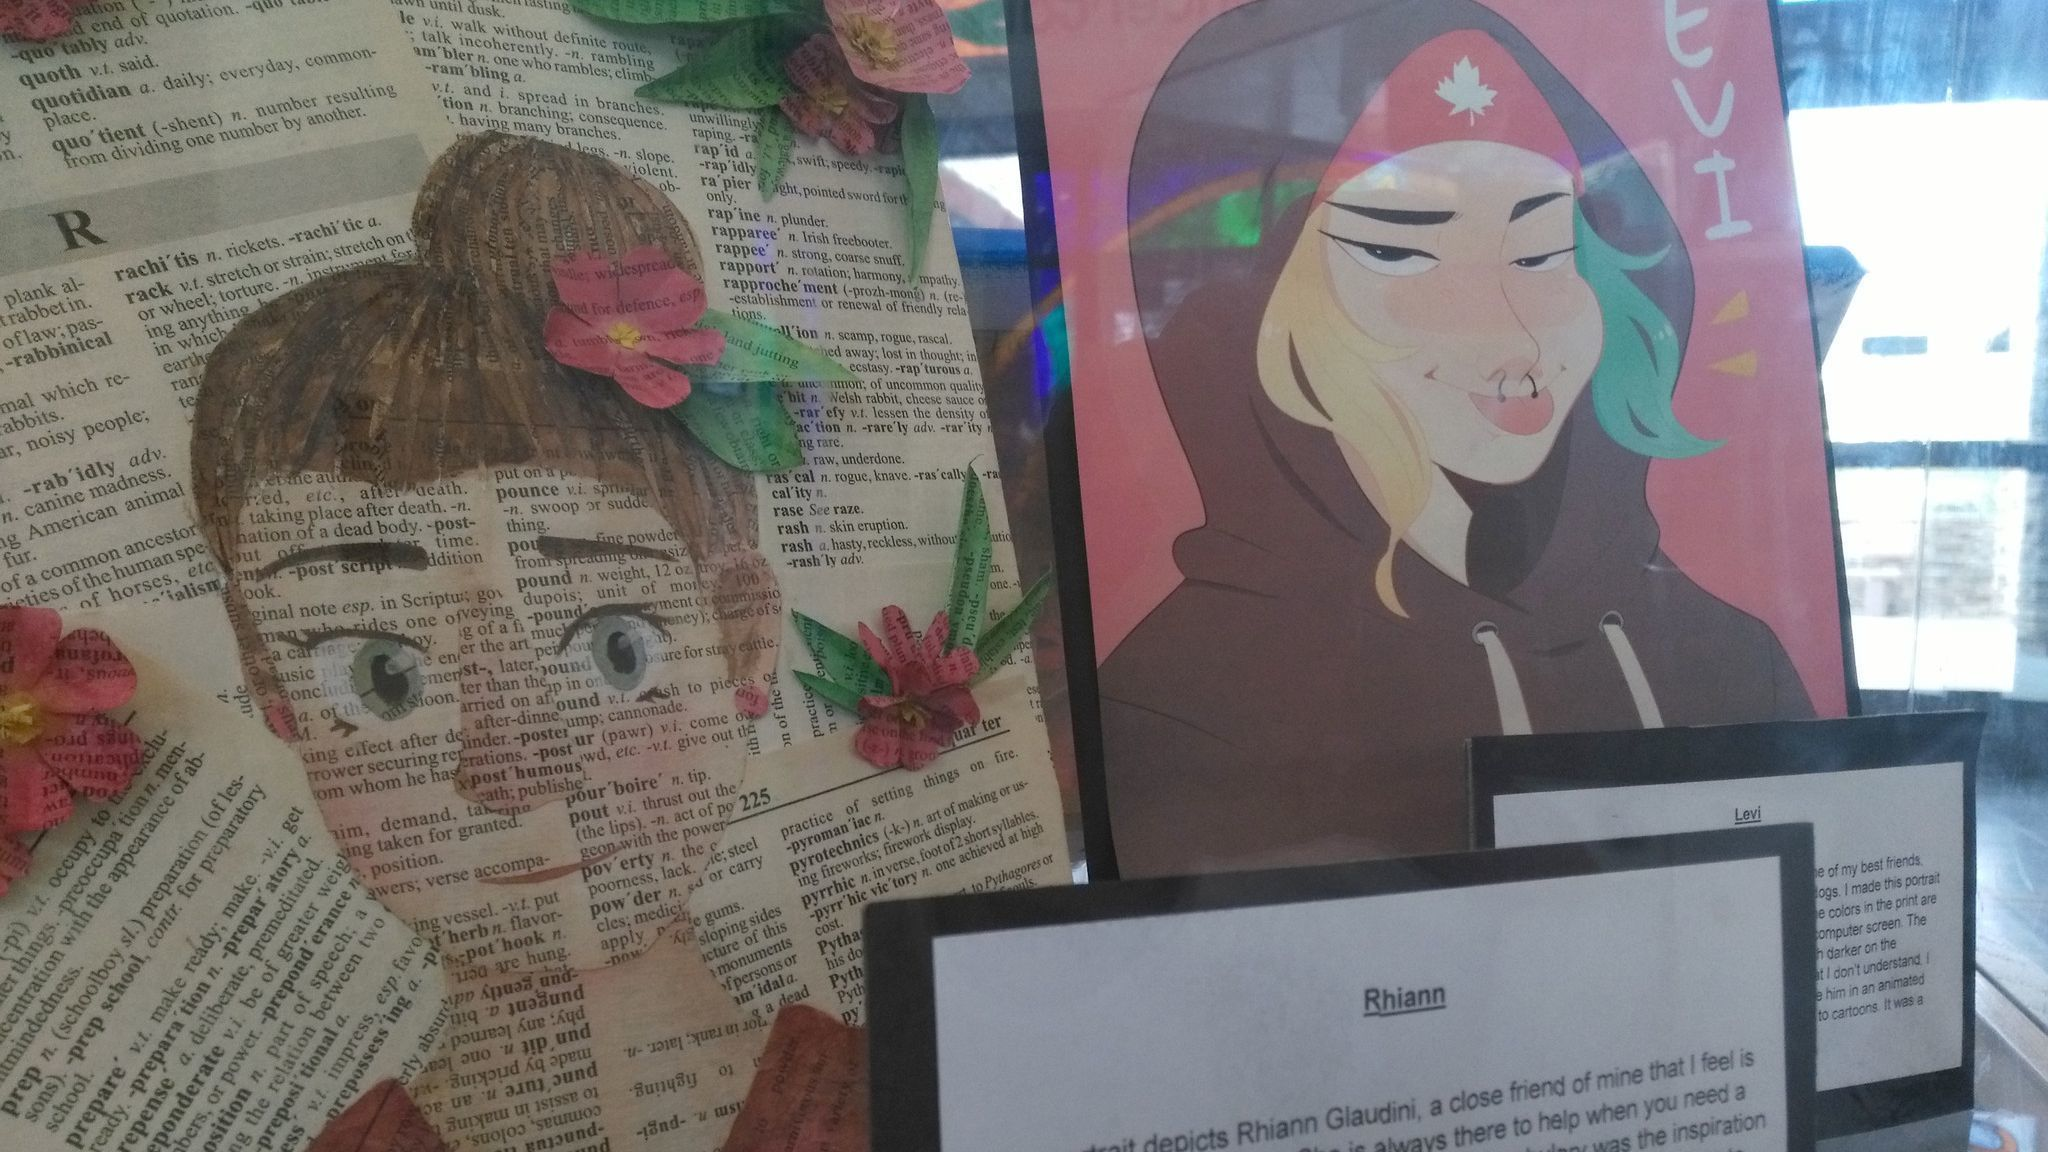 Mountain Valley Academy student Sydney Honadle created a mixed media of Rhiann Glaudini made from torn book pages, left, and Kirsten Nguyen made a print of her friend Levi Papi.